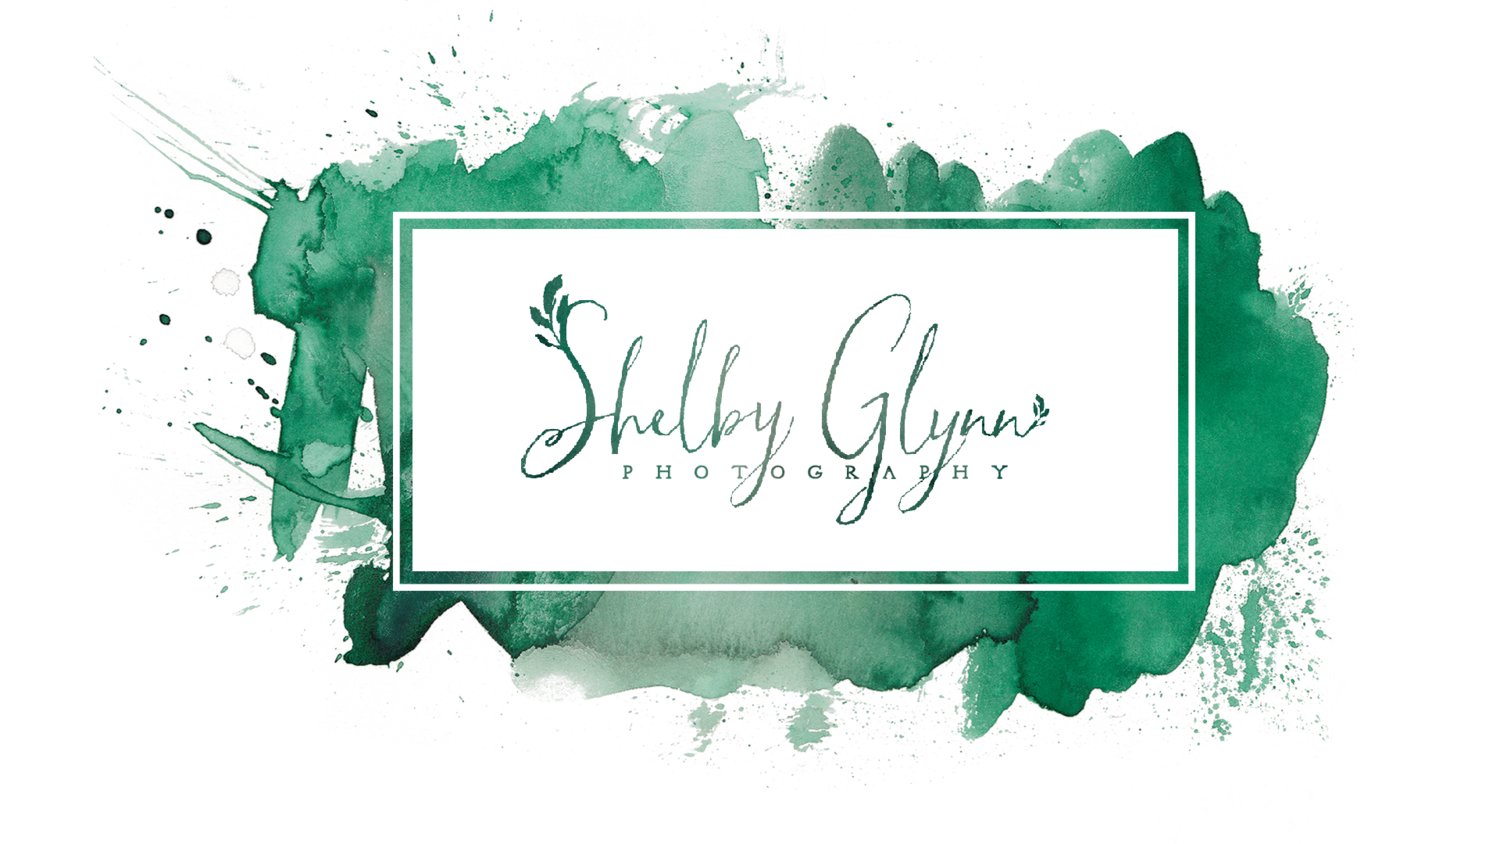 Shelby Glynn Photography  | Wedding and Portrait Photographer  |  Tampa, FL